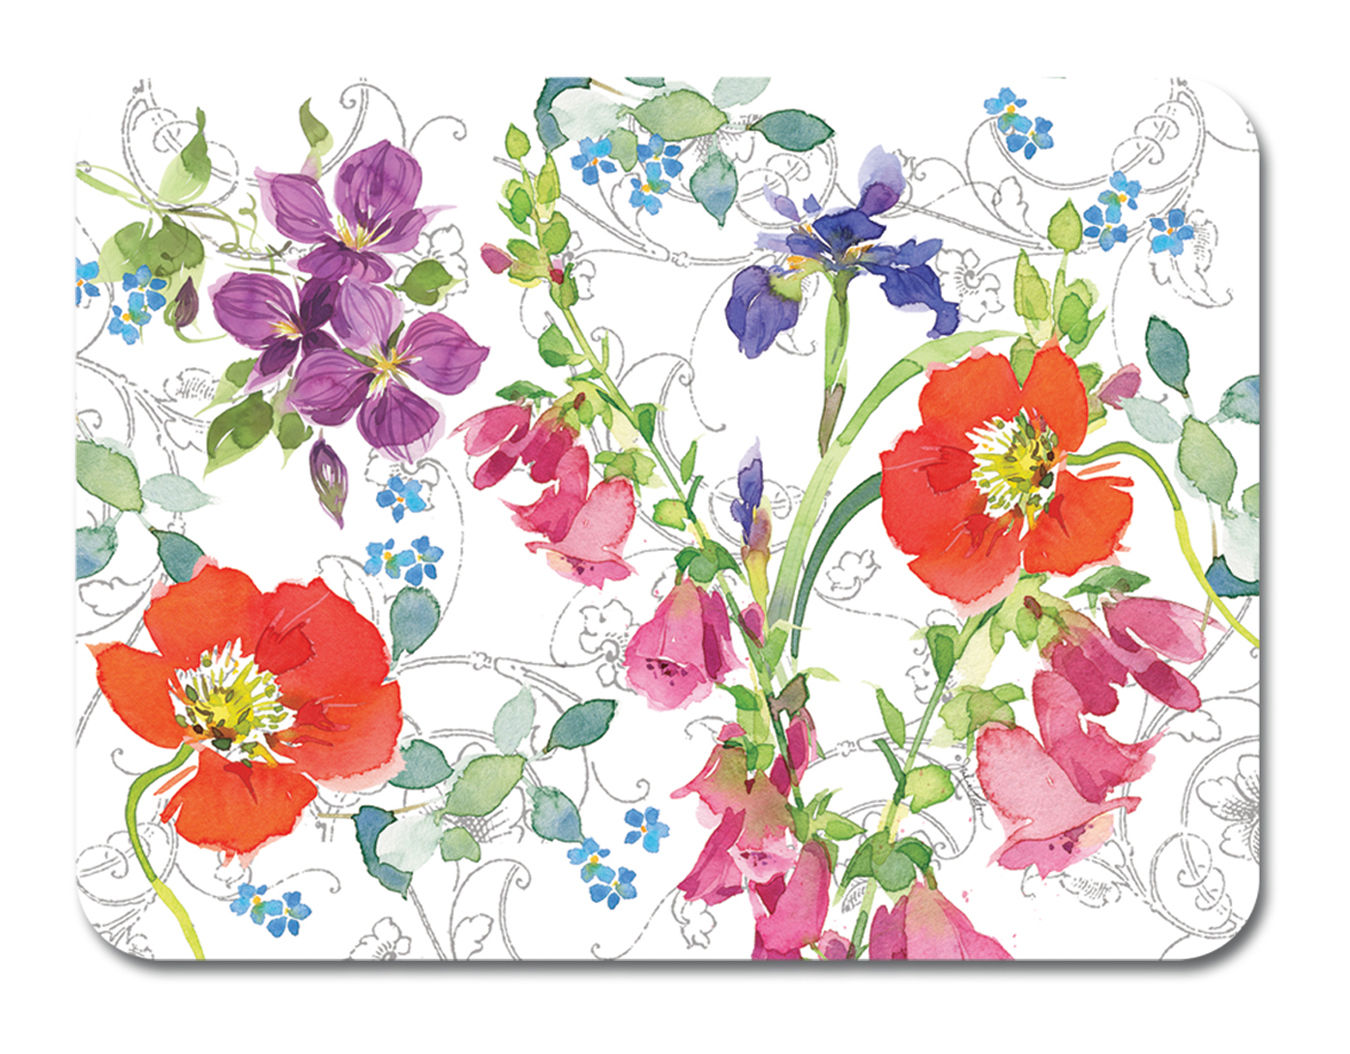 keller charles plastic placemats - plastic placemats perenial click to enlarge